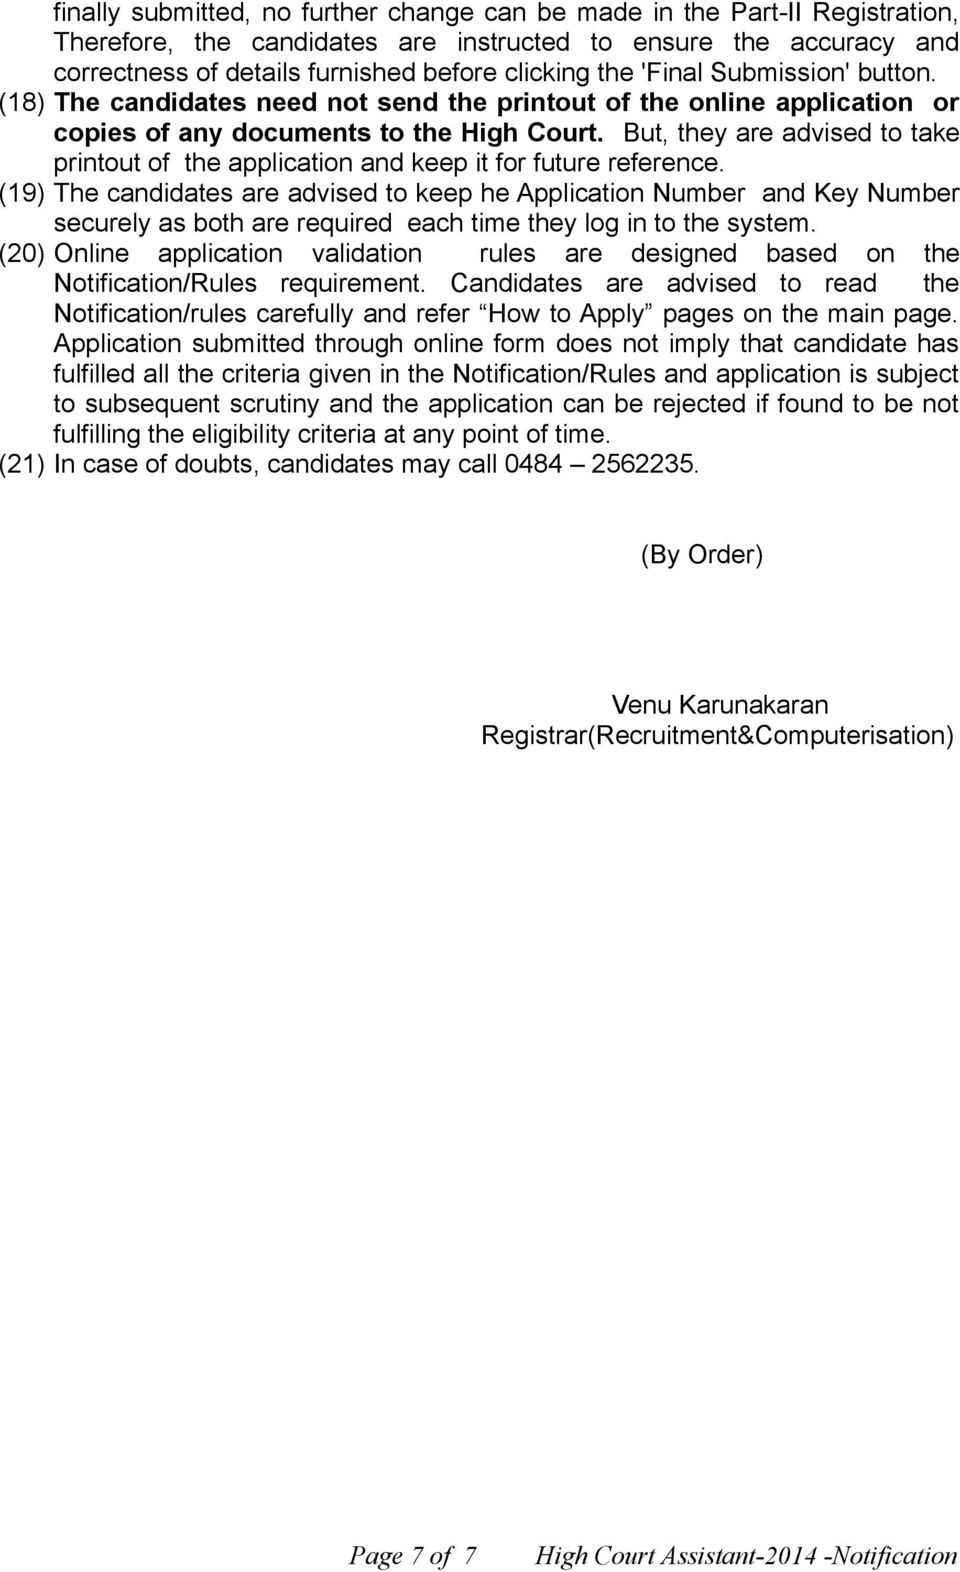 But, they are advised to take printout of the application and keep it for future reference.